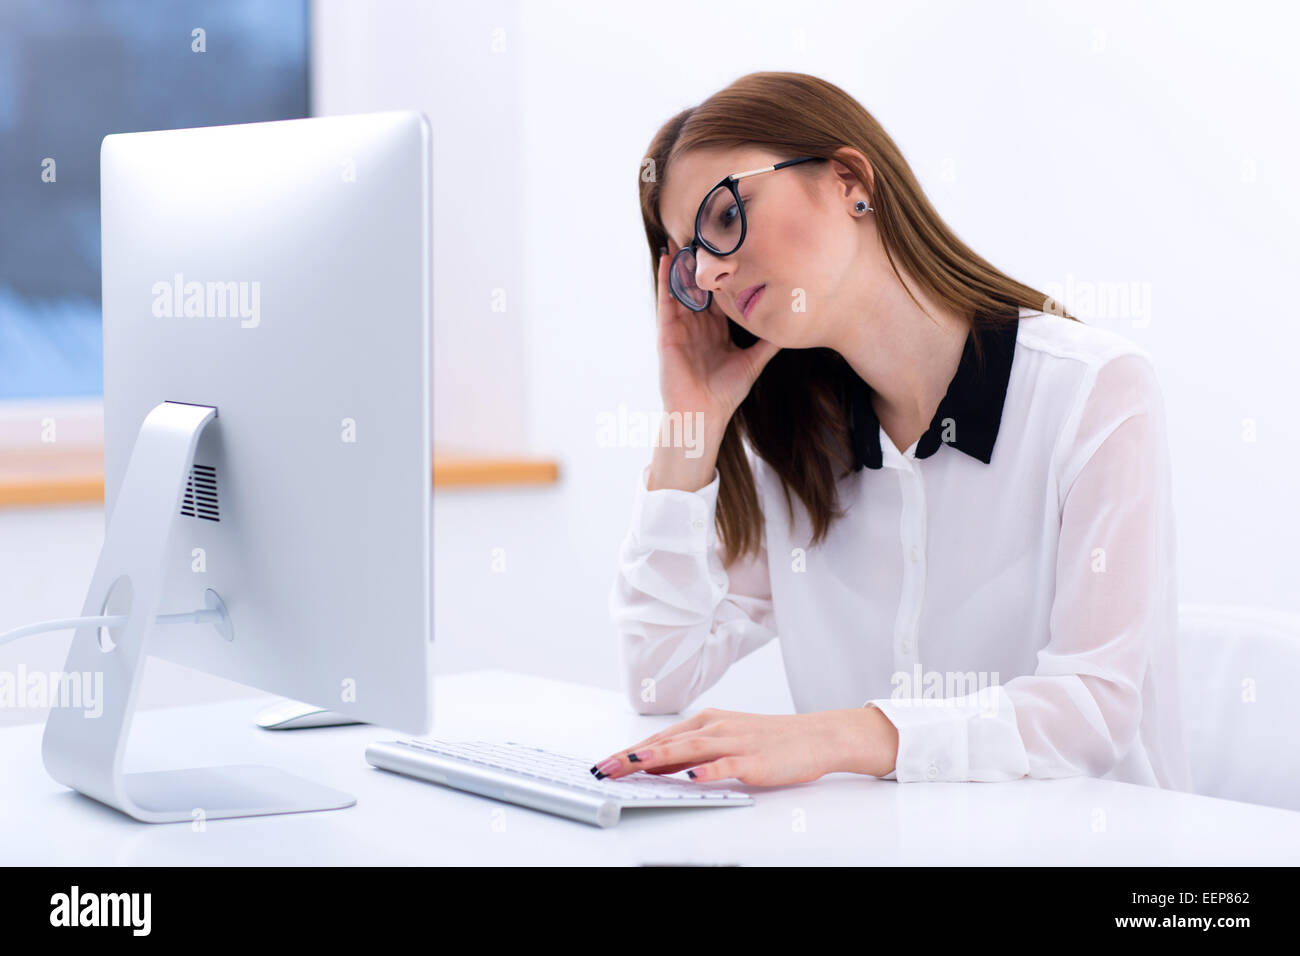 Tired businesswoman working in office - Stock Image